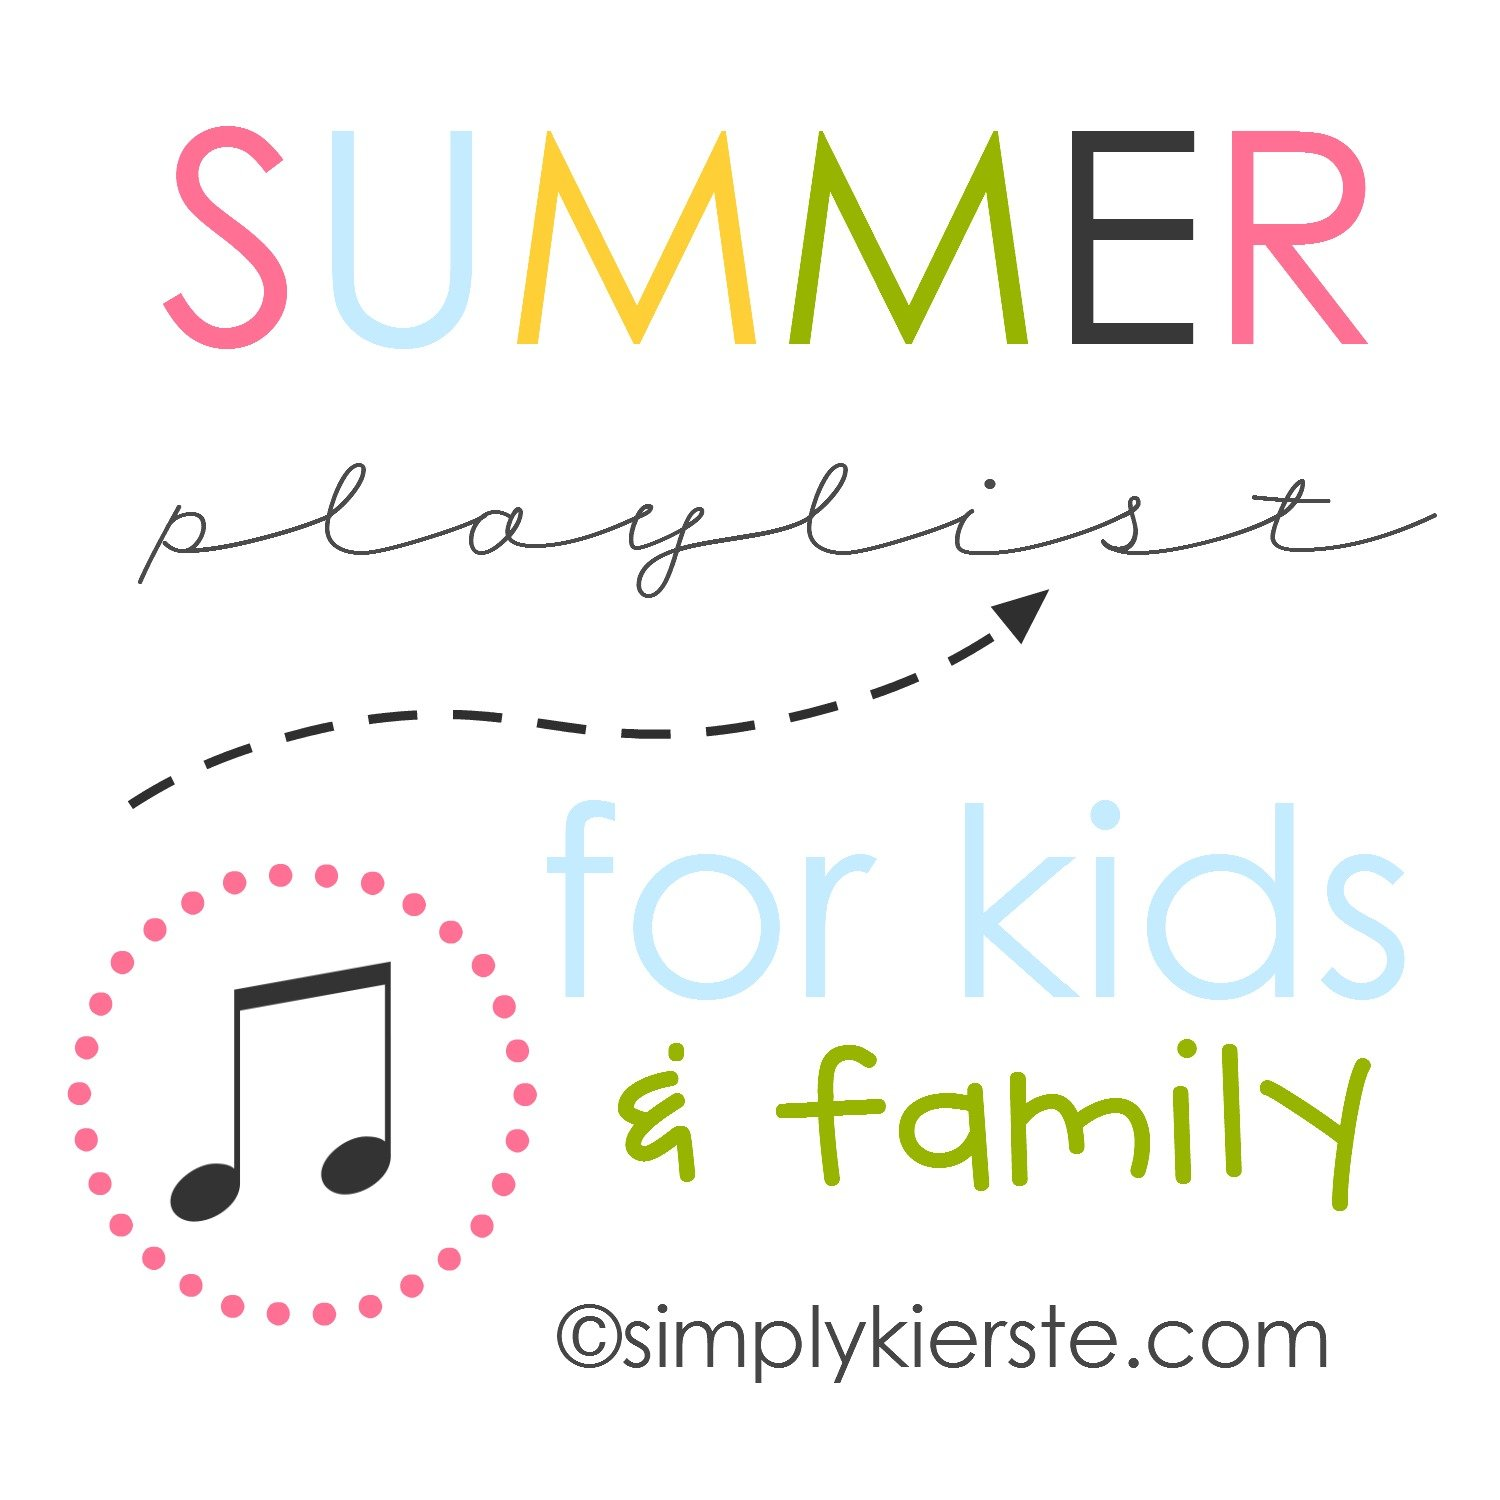 Summer Playlists for Kids & Families